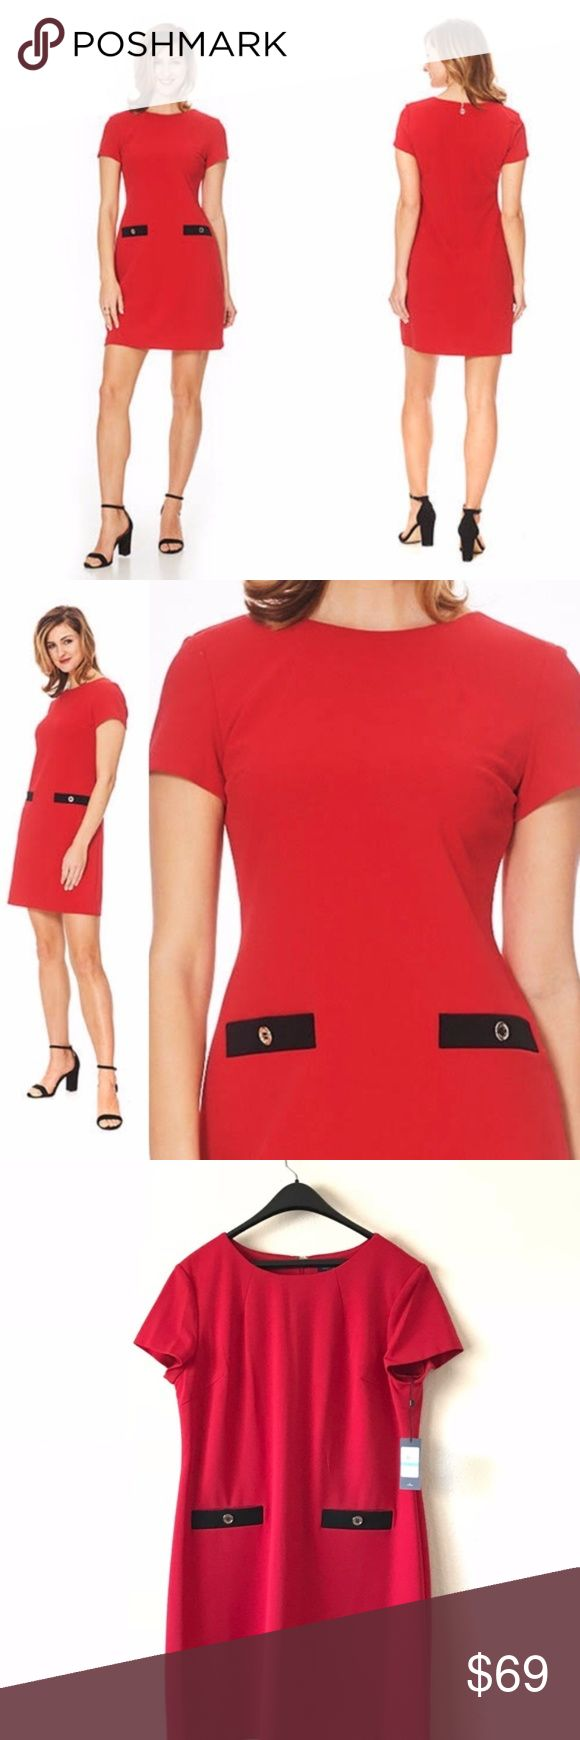 "Tommy Hilfiger Valentine's Day Shift Dress Red Perfect for valentine's day Versatile and chic, this Tommy Hilfiger dress is detailed with shiny decorative buttons for at-the-office polish. Hidden back Signature zipper with hook-and-eye closure Hits above knee Jewel neckline; shift silhouette Two non-functional pockets with decorative buttons Color : Scarlet Red / Black Polyester/spandex Approximately Measurements  Shoulder to shoulder : 17"" Pit to pit : 22"" Waist : 40"" Hips : 46"" Hem : 52""…"